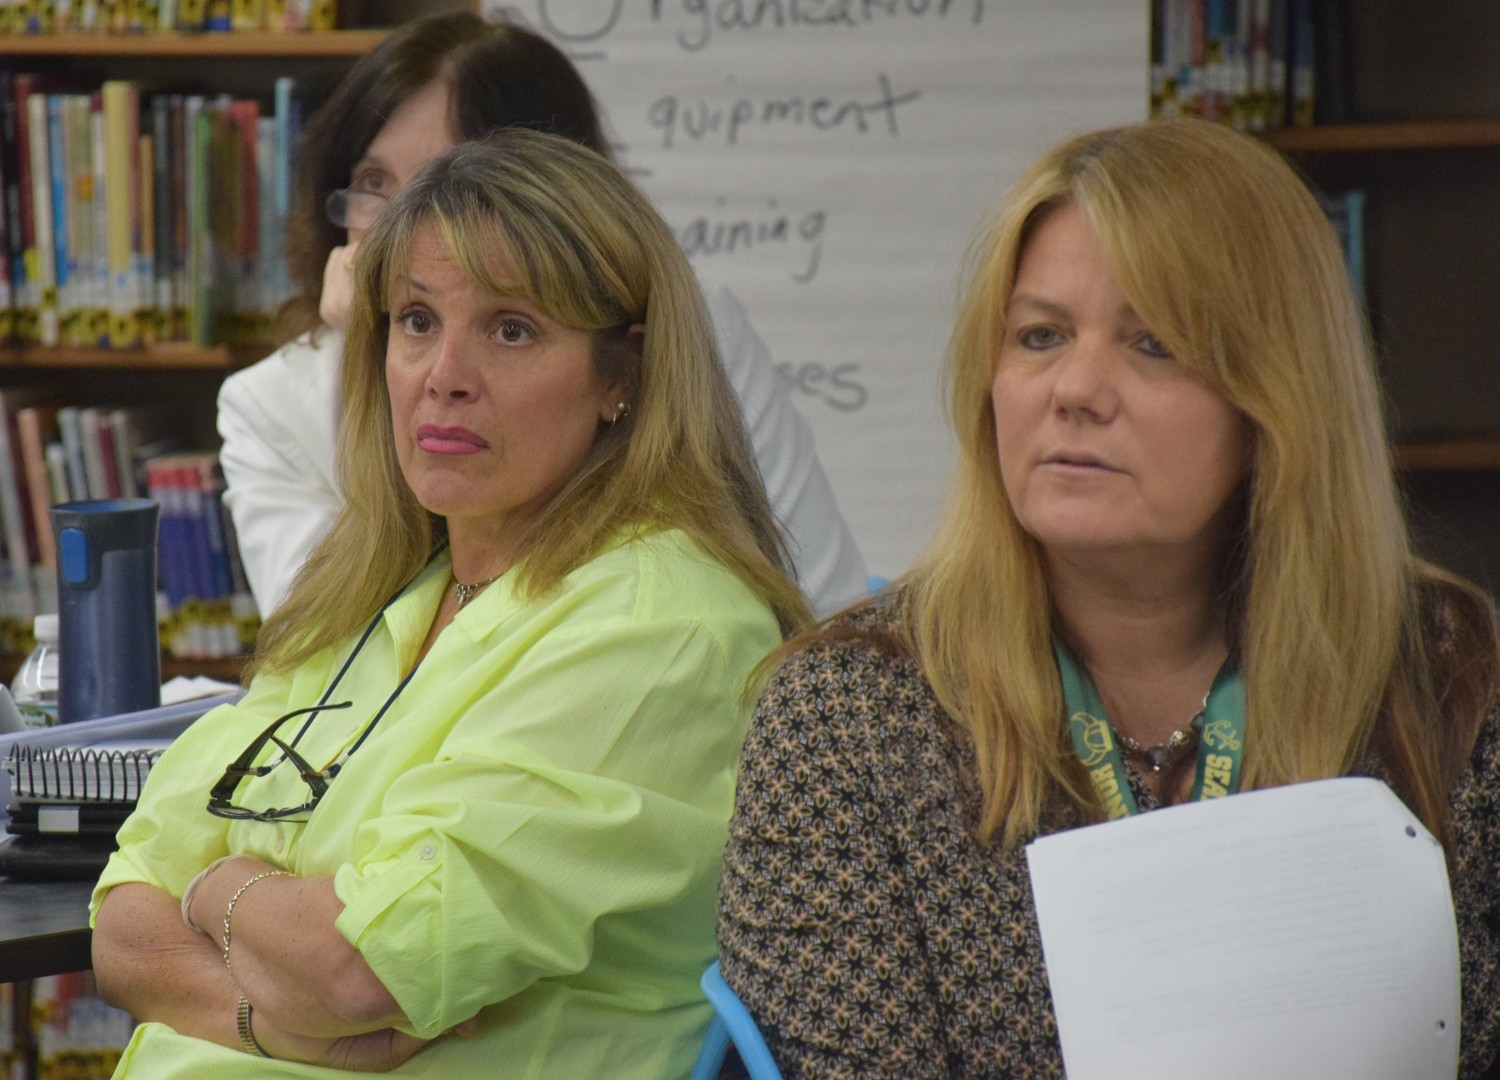 From left, Wantagh High School Principal Carolyn Breivogel and Seaford Manor Elementary School Principal Debra Emmerich were among the participants.